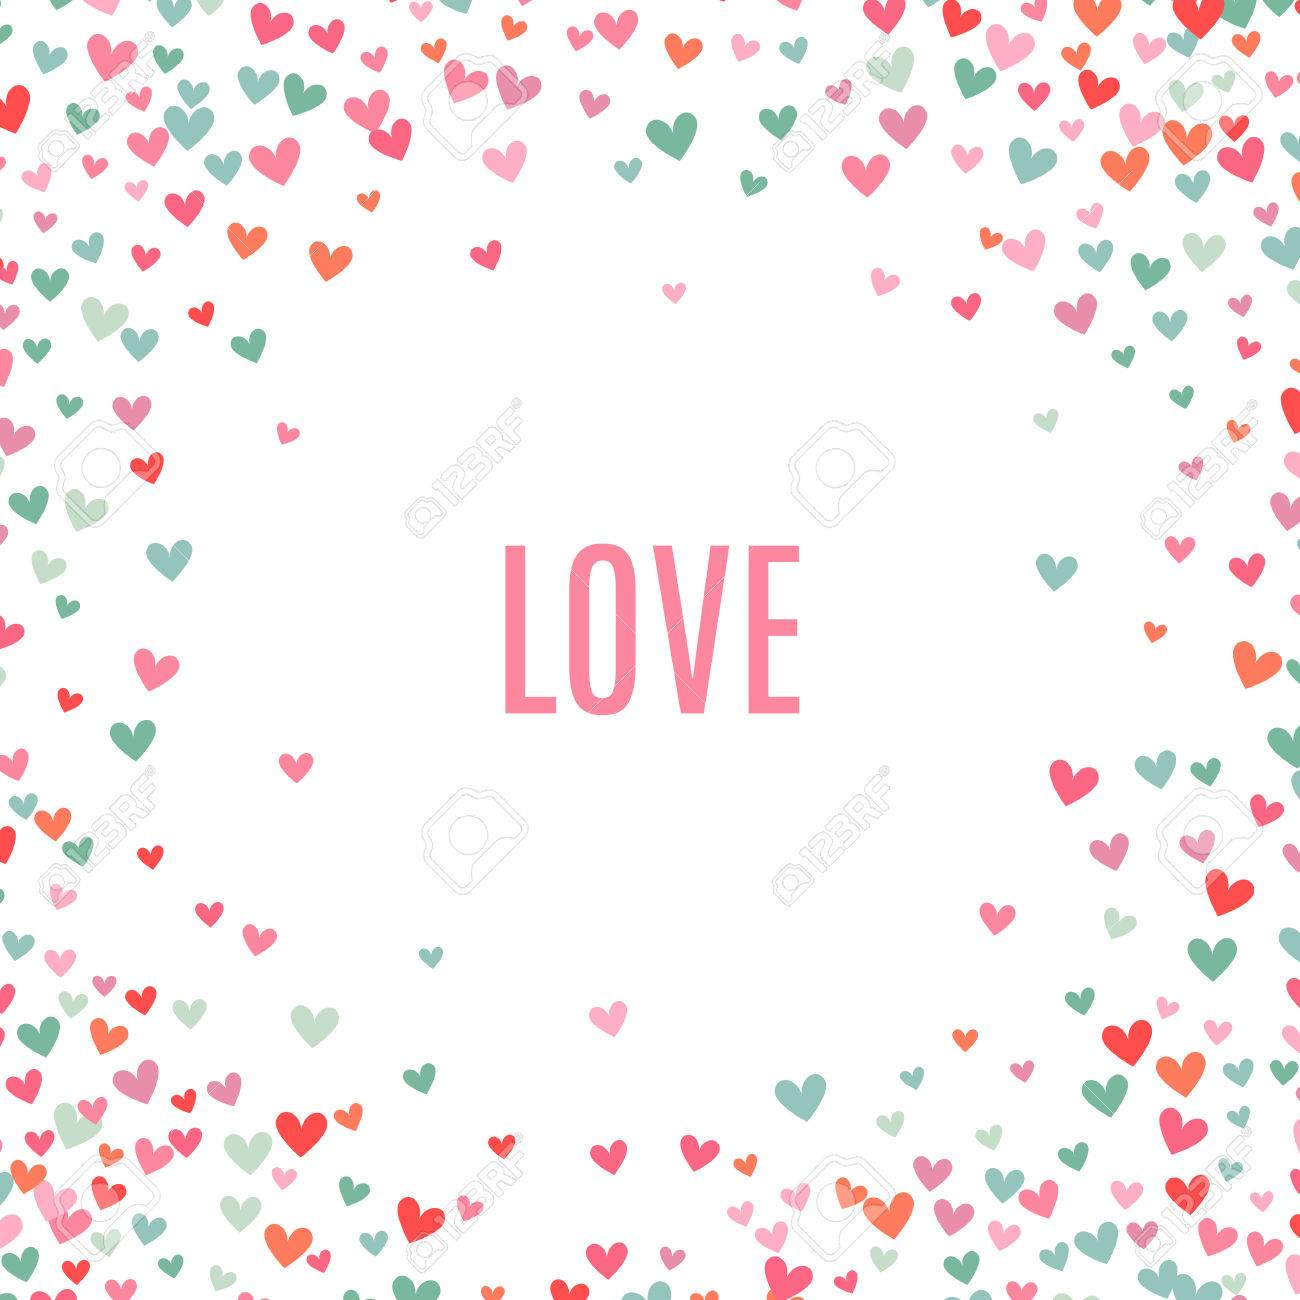 Romantic pink and blue heart background. Vector illustration for holiday design. Many flying hearts around on white background. For wedding card, valentine day greetings, lovely frame. - 51850027